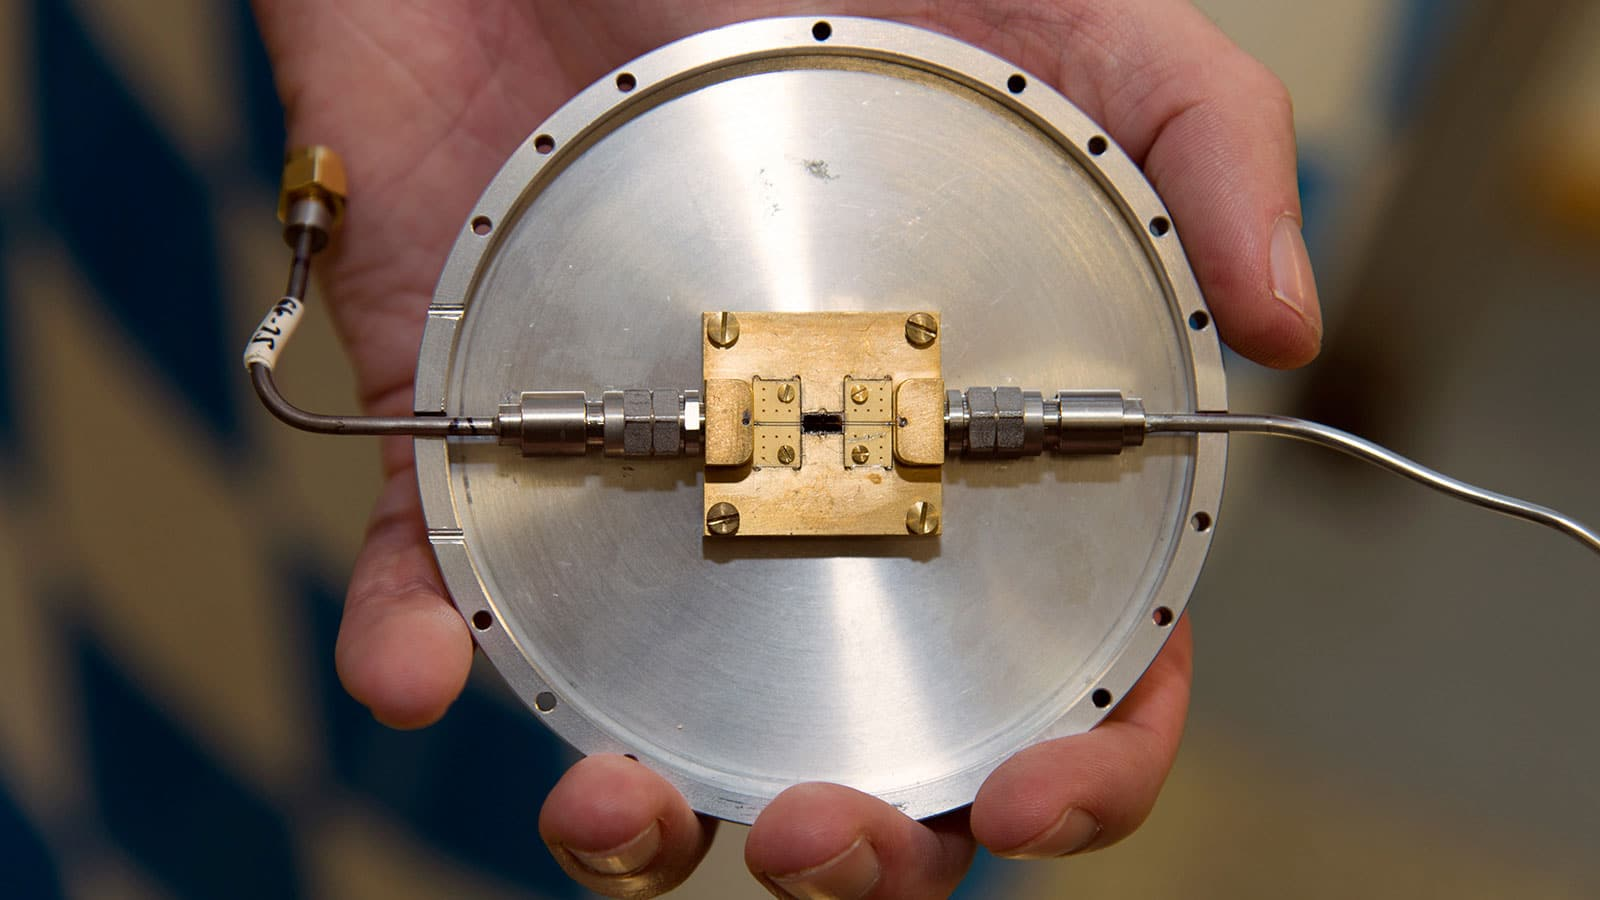 Quantum circuit, developed at the Walther-Meissner-Institut (WMI), which can be used to produce restricted microwave states. Image: A. Battenberg / TUM